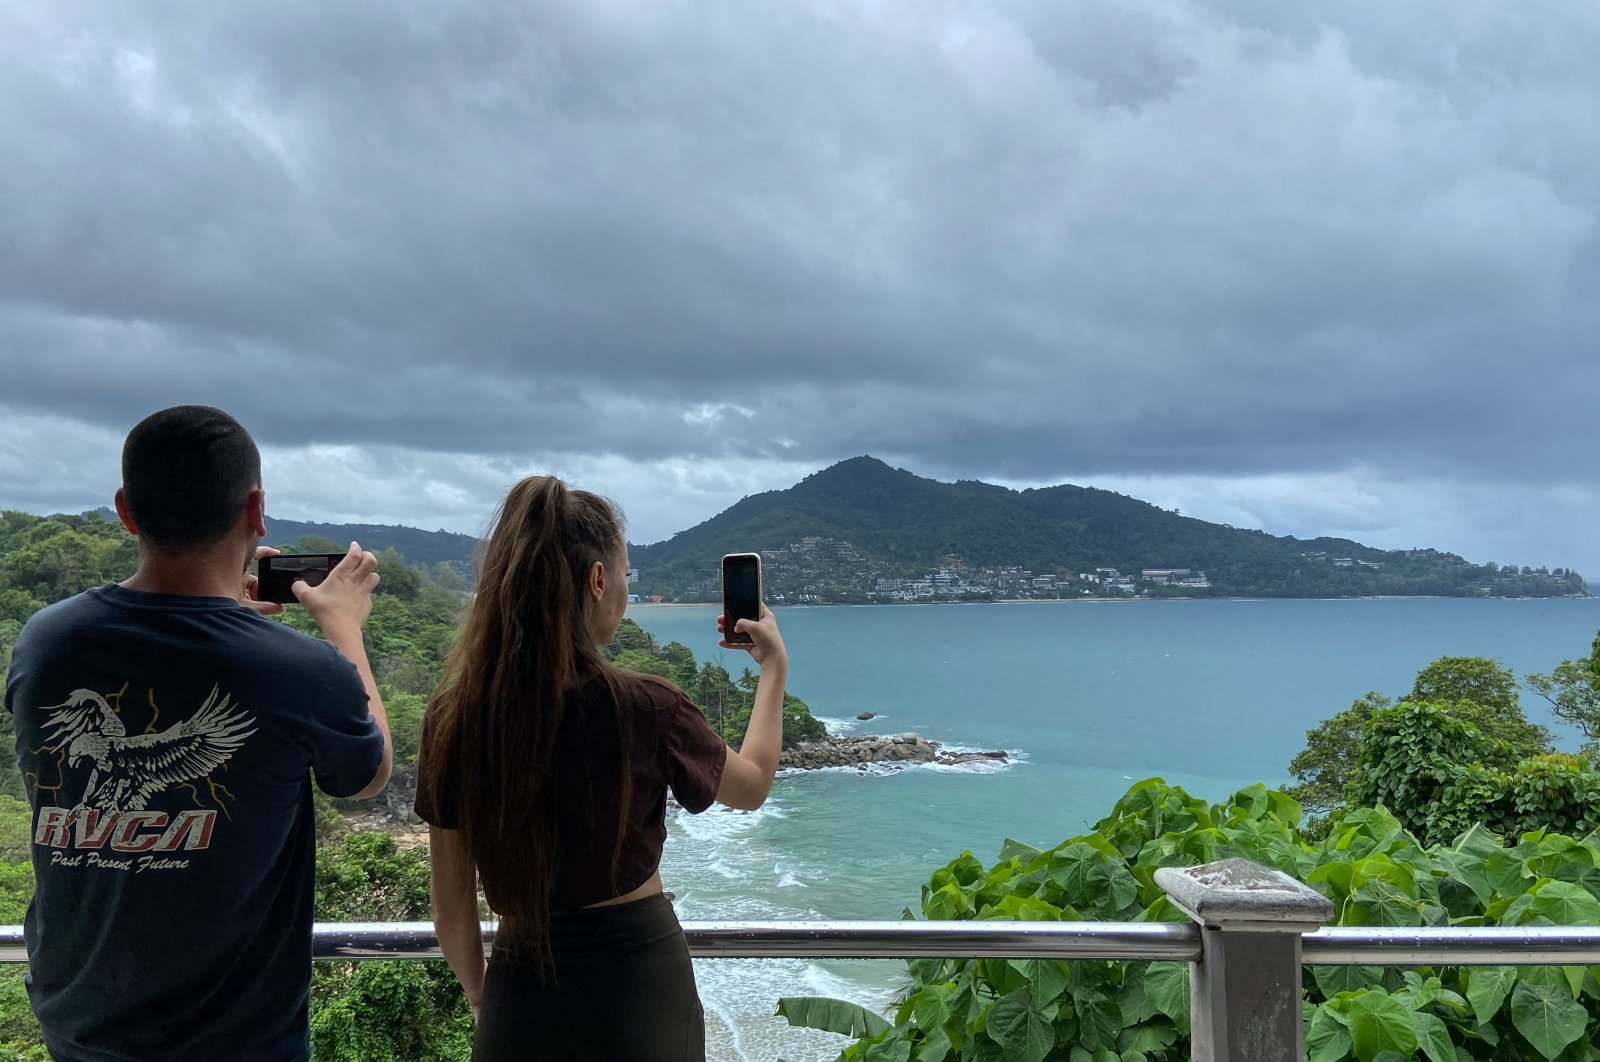 Tourists use their mobile phones to take pictures of the view from Laem Sing viewpoint in Phuket, Thailand, Sep. 21, 2021. (AFP Photo)